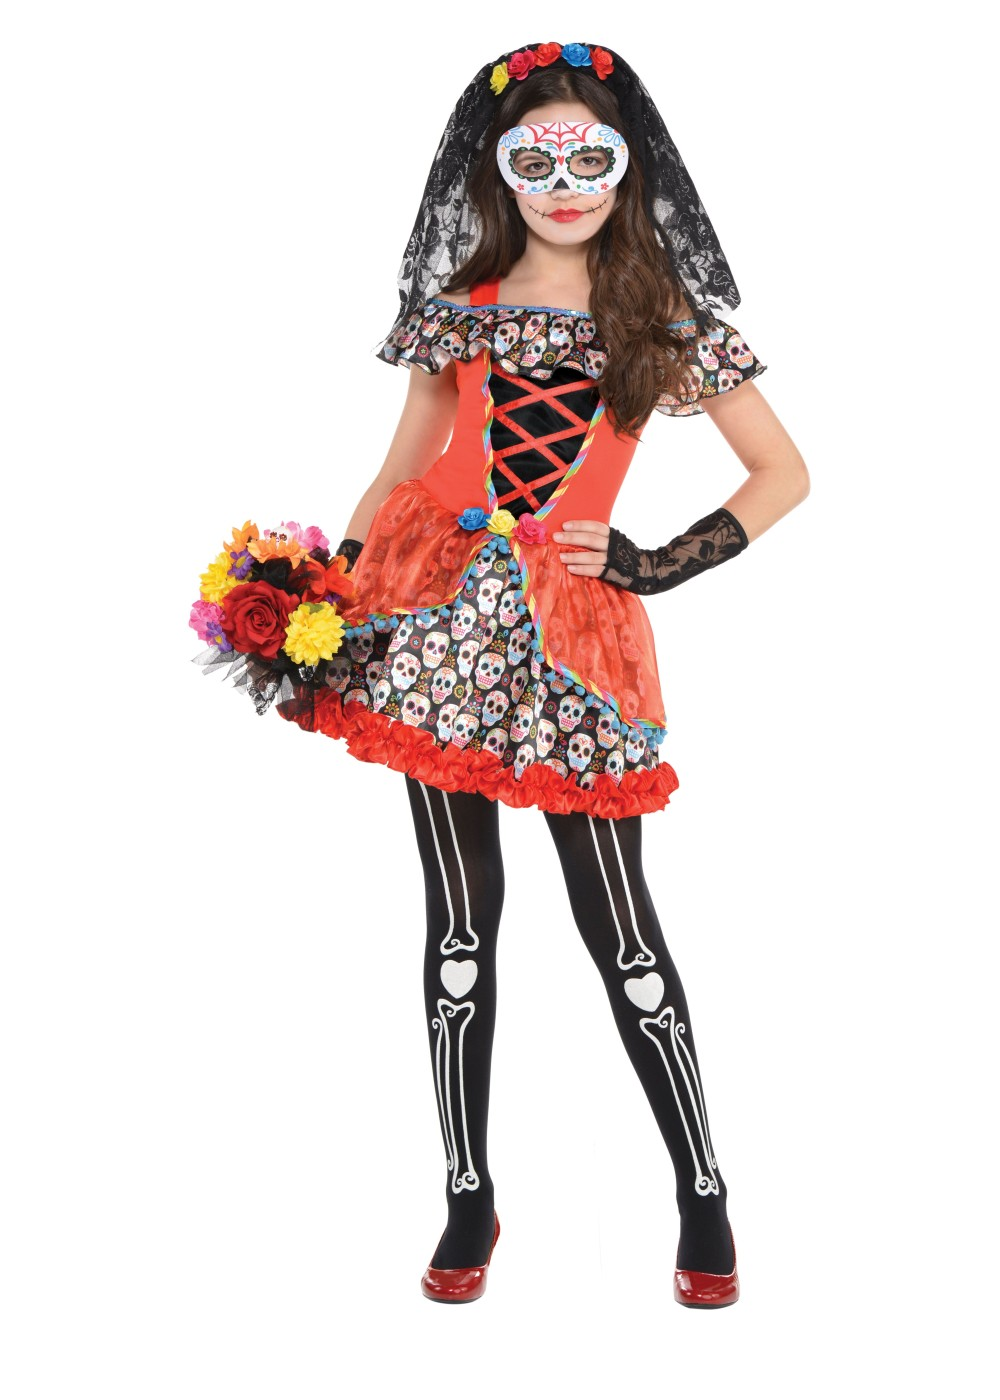 Sugar Skull Senorita Girls Costume  sc 1 st  Wonder Costumes & Sugar Skull Senorita Girls Costume - Holiday Costumes